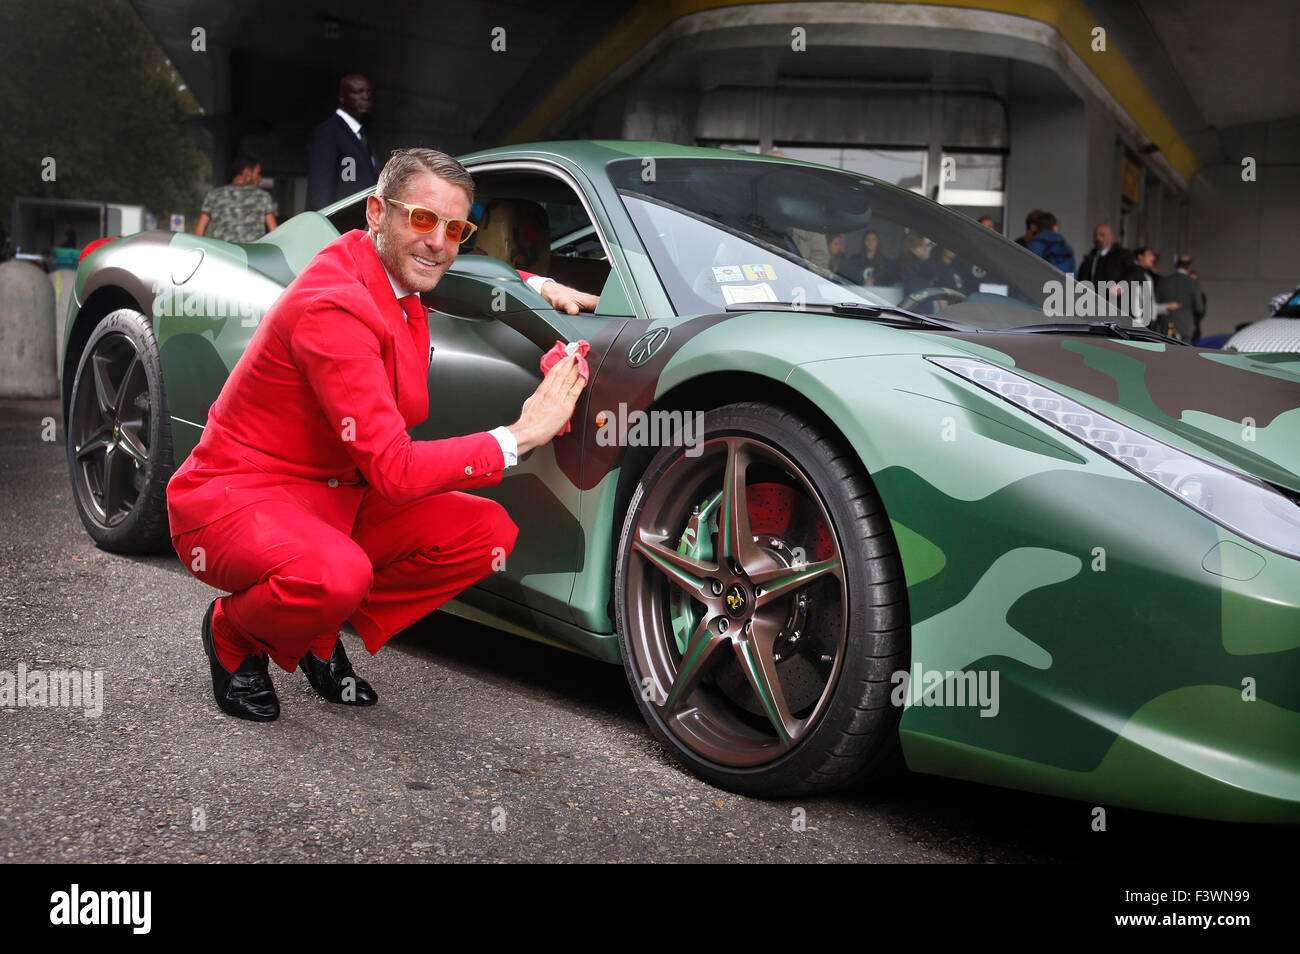 Lapo Elkann with a camoflauged Ferrari at the opening of the new headquarters of Garage Italia Customs in Milan, - Stock Image